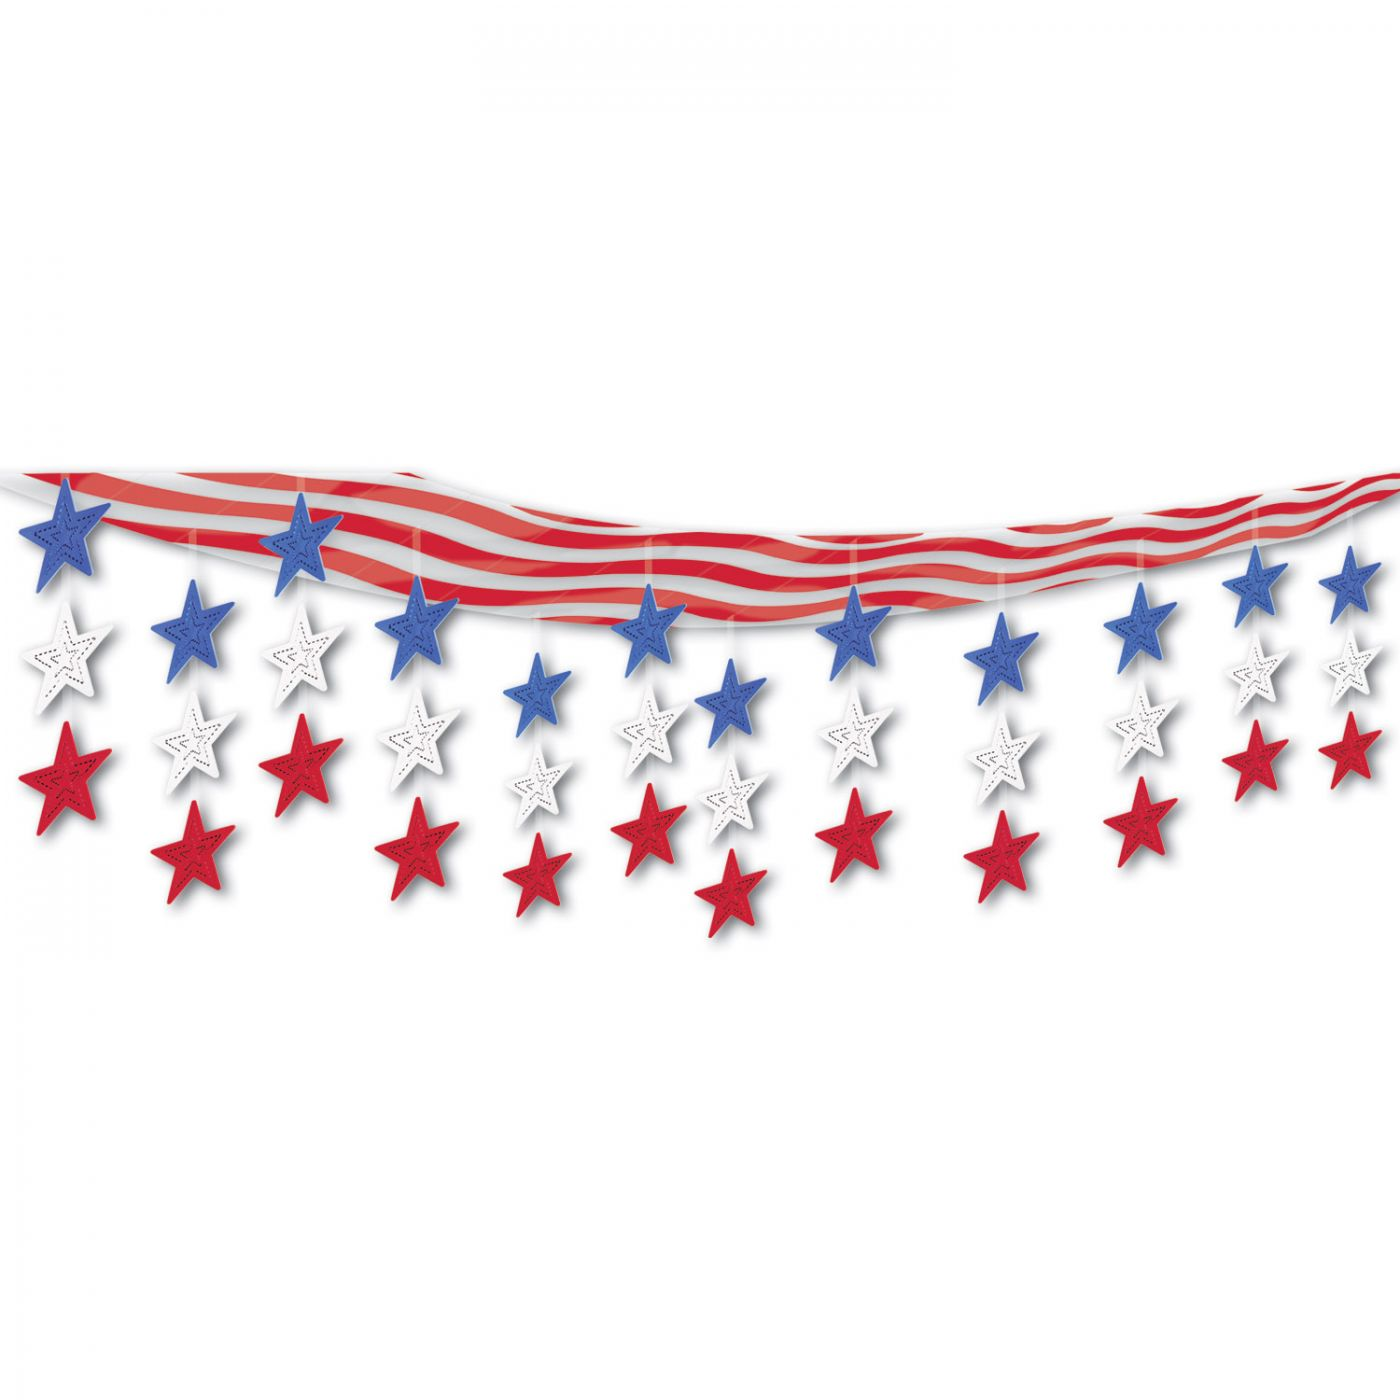 Stars & Stripes Ceiling Decor (6) image